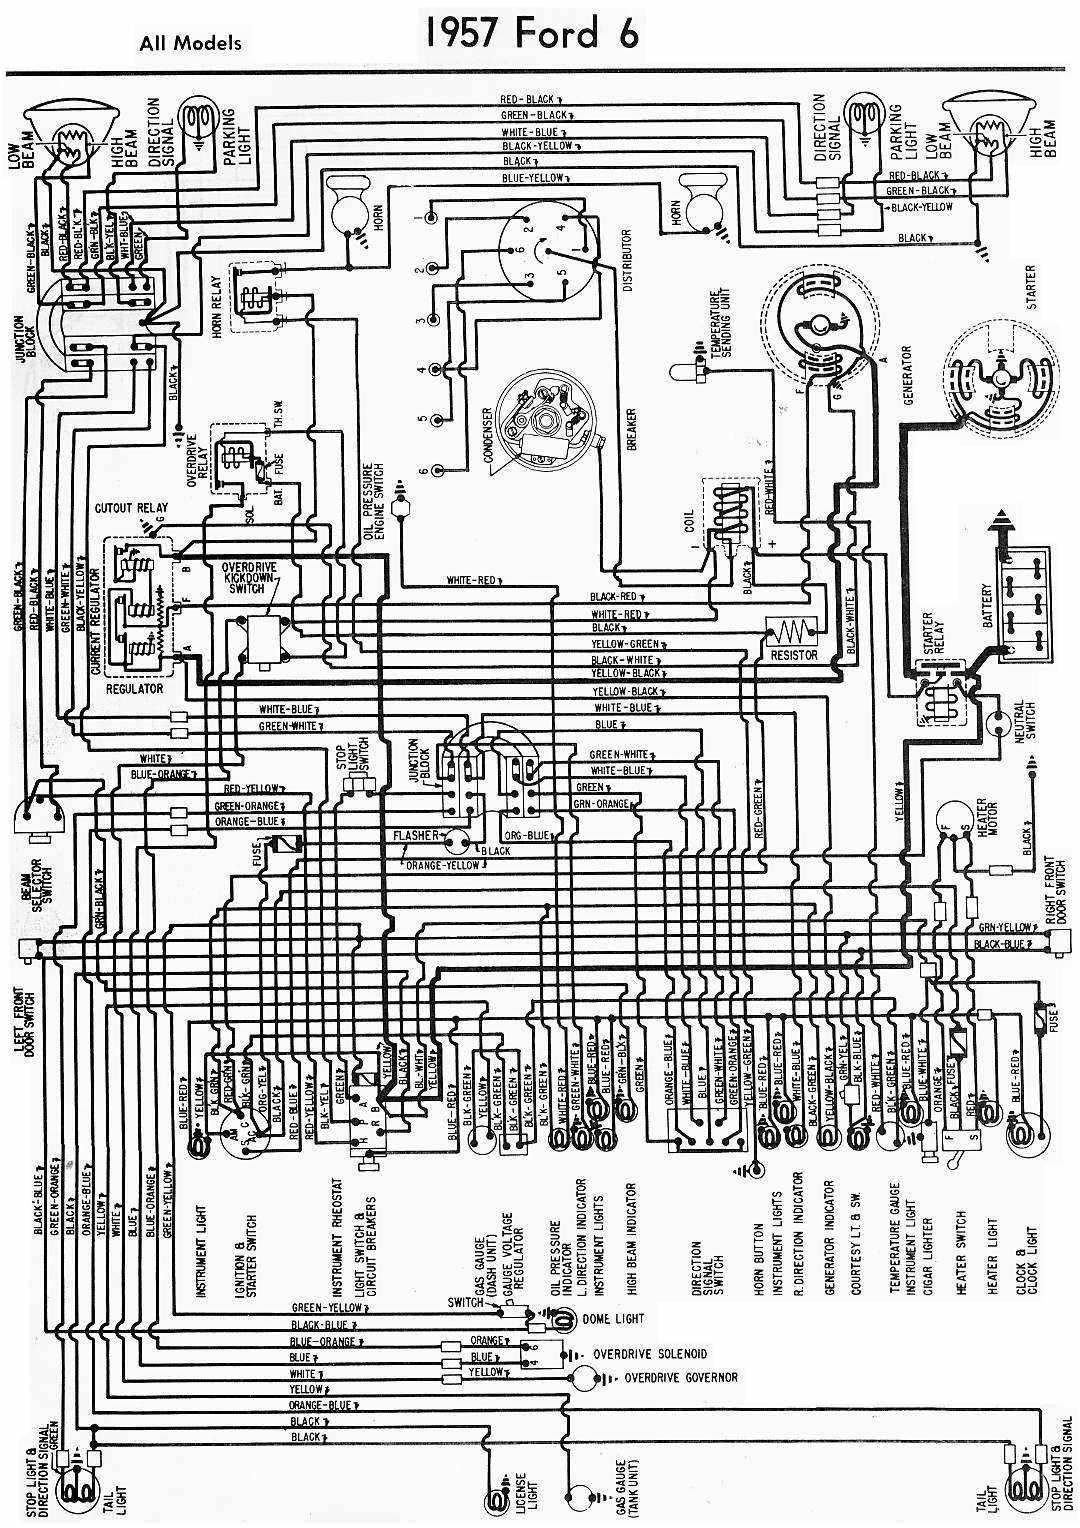 All Wiring Diagrams Lifan 125cc Engine Diagram Ford 6 Cylinder Models 1957 About